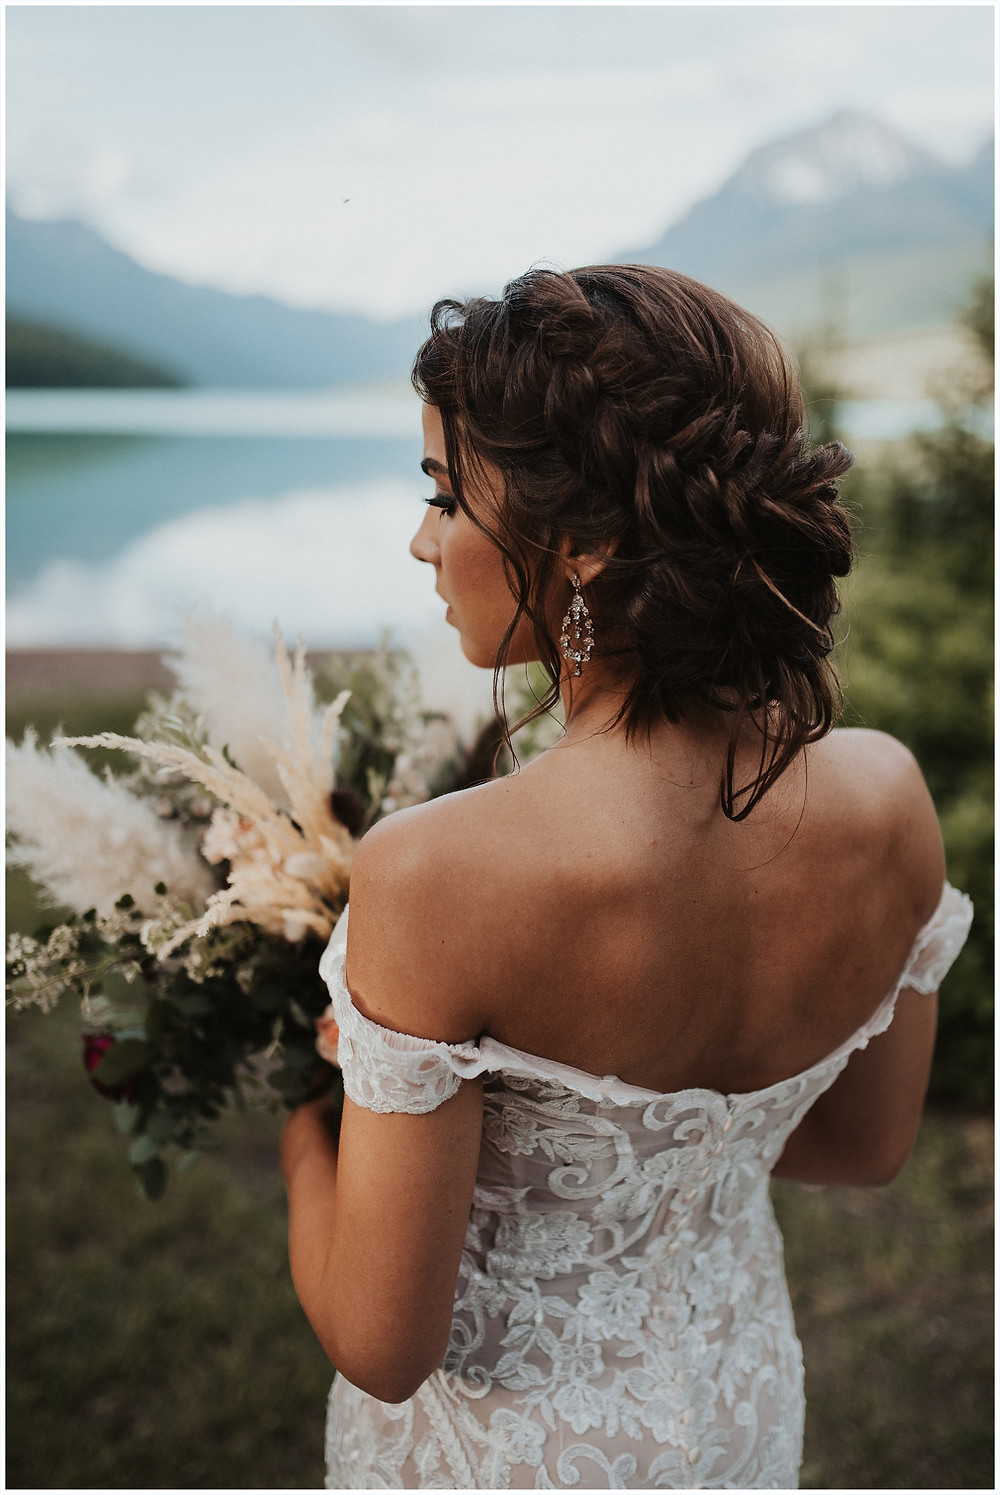 wedding hair inspiration, Glacier National Park, Elegant and Romantic Styled Elopement, Katy Shay Photo, Montana Wedding and Elopement Photographer, Glacier National Park Photographer, Moody photos, glamorous wedding, Navy, maroon, coral, lace wedding dress, Bozeman photographer, Missoula photographer, Kalispell photographer, Glacier NP, Bowman Lake, Allure wedding dress